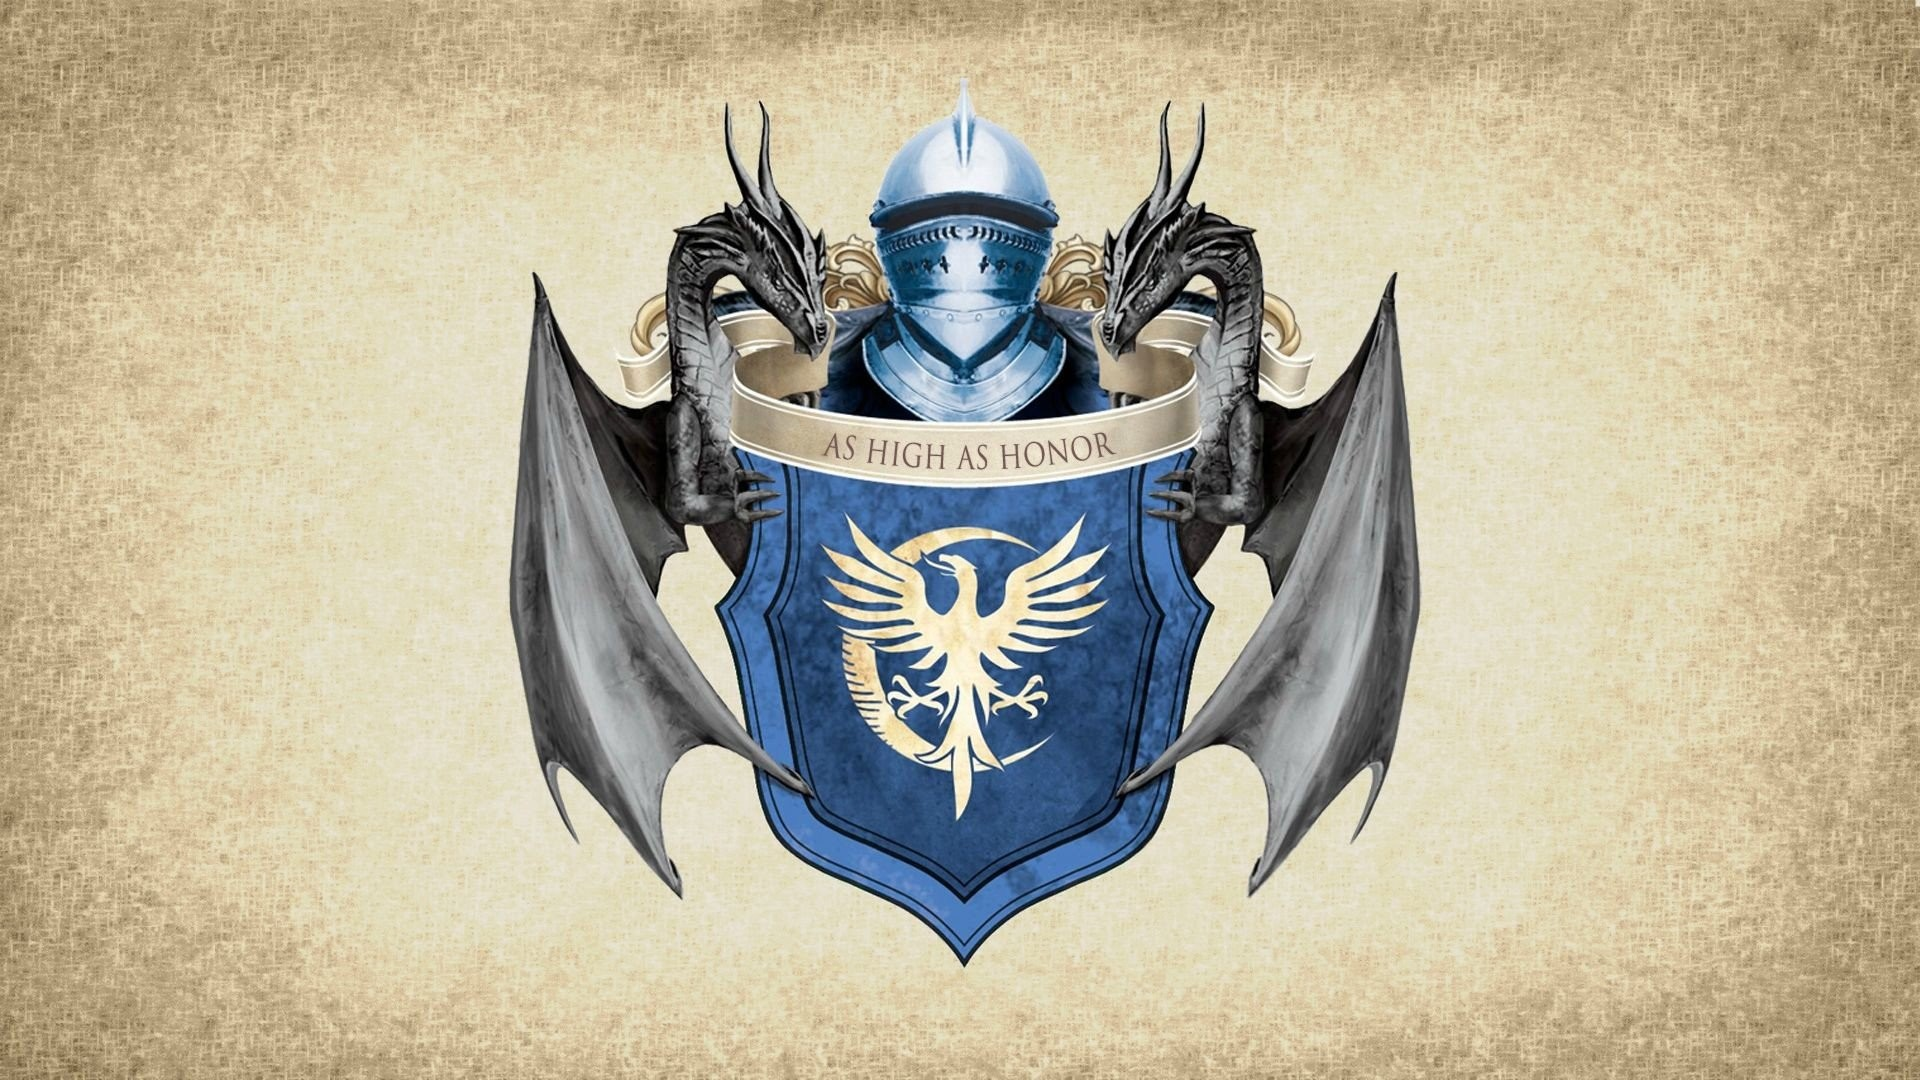 As High Honor A Song Of Ice And Fire Coat Arms Game Thrones House Arryn  Sigil